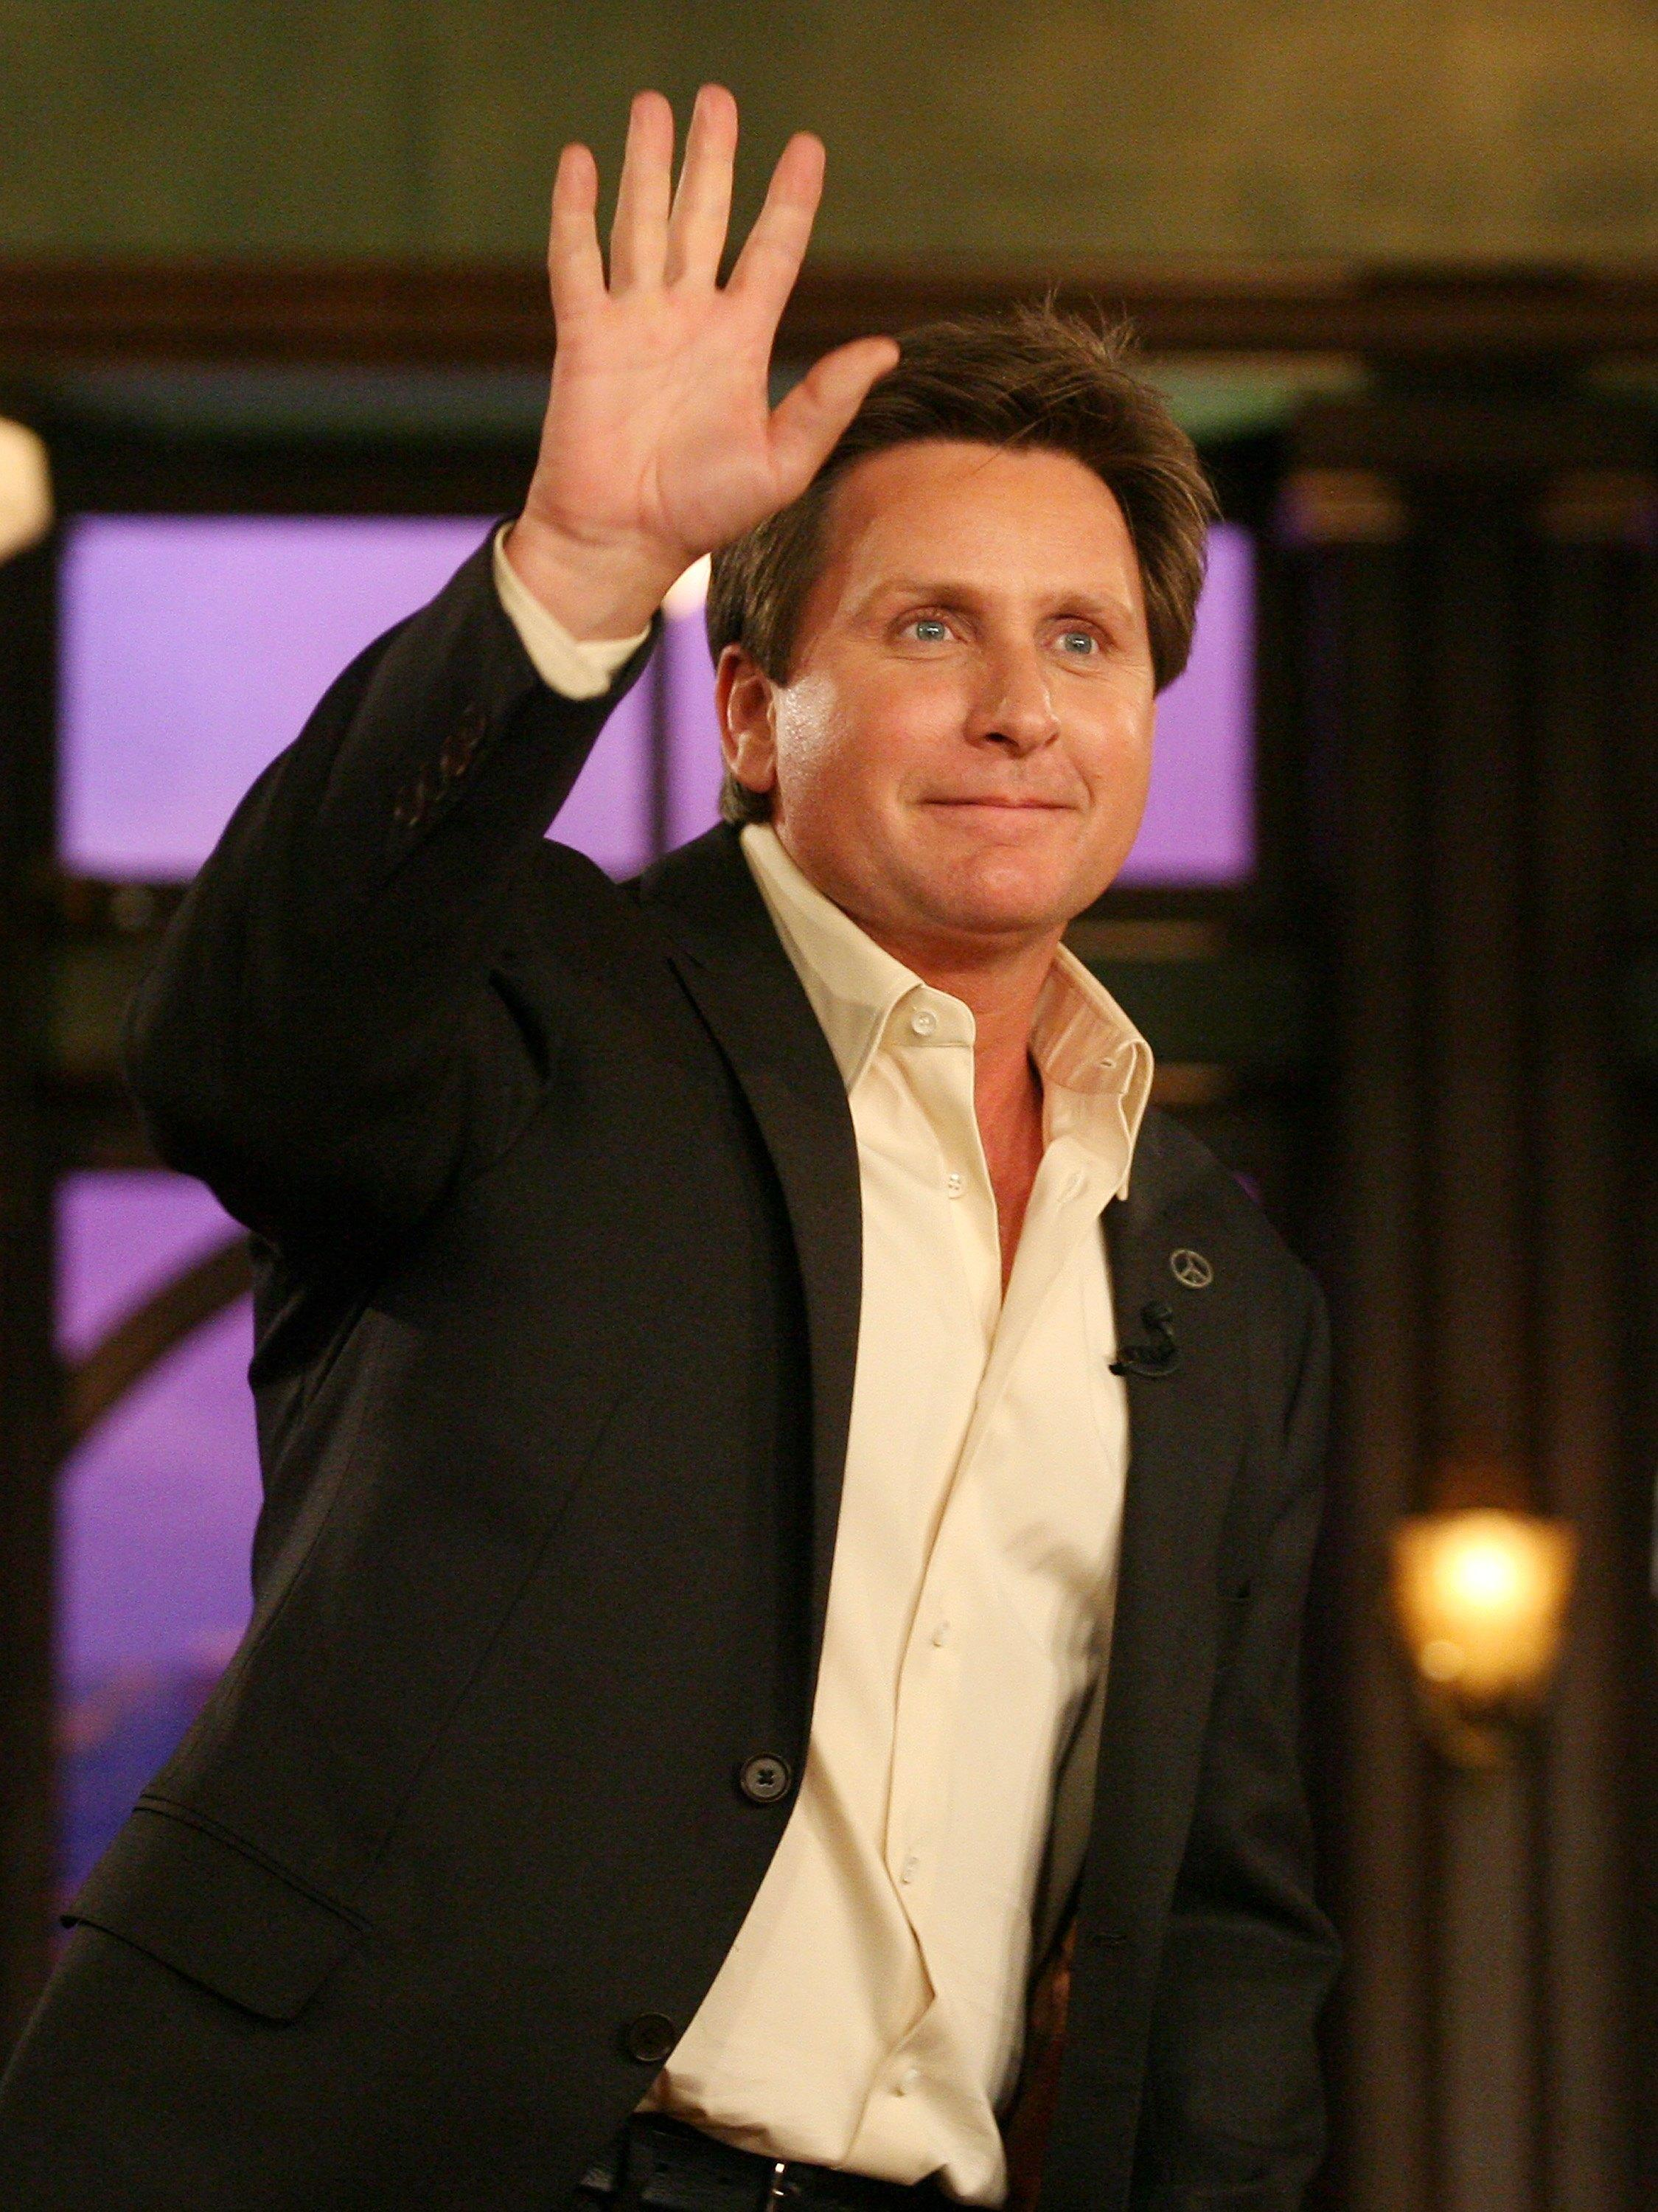 Actor-filmmaker Emilio Estevez on